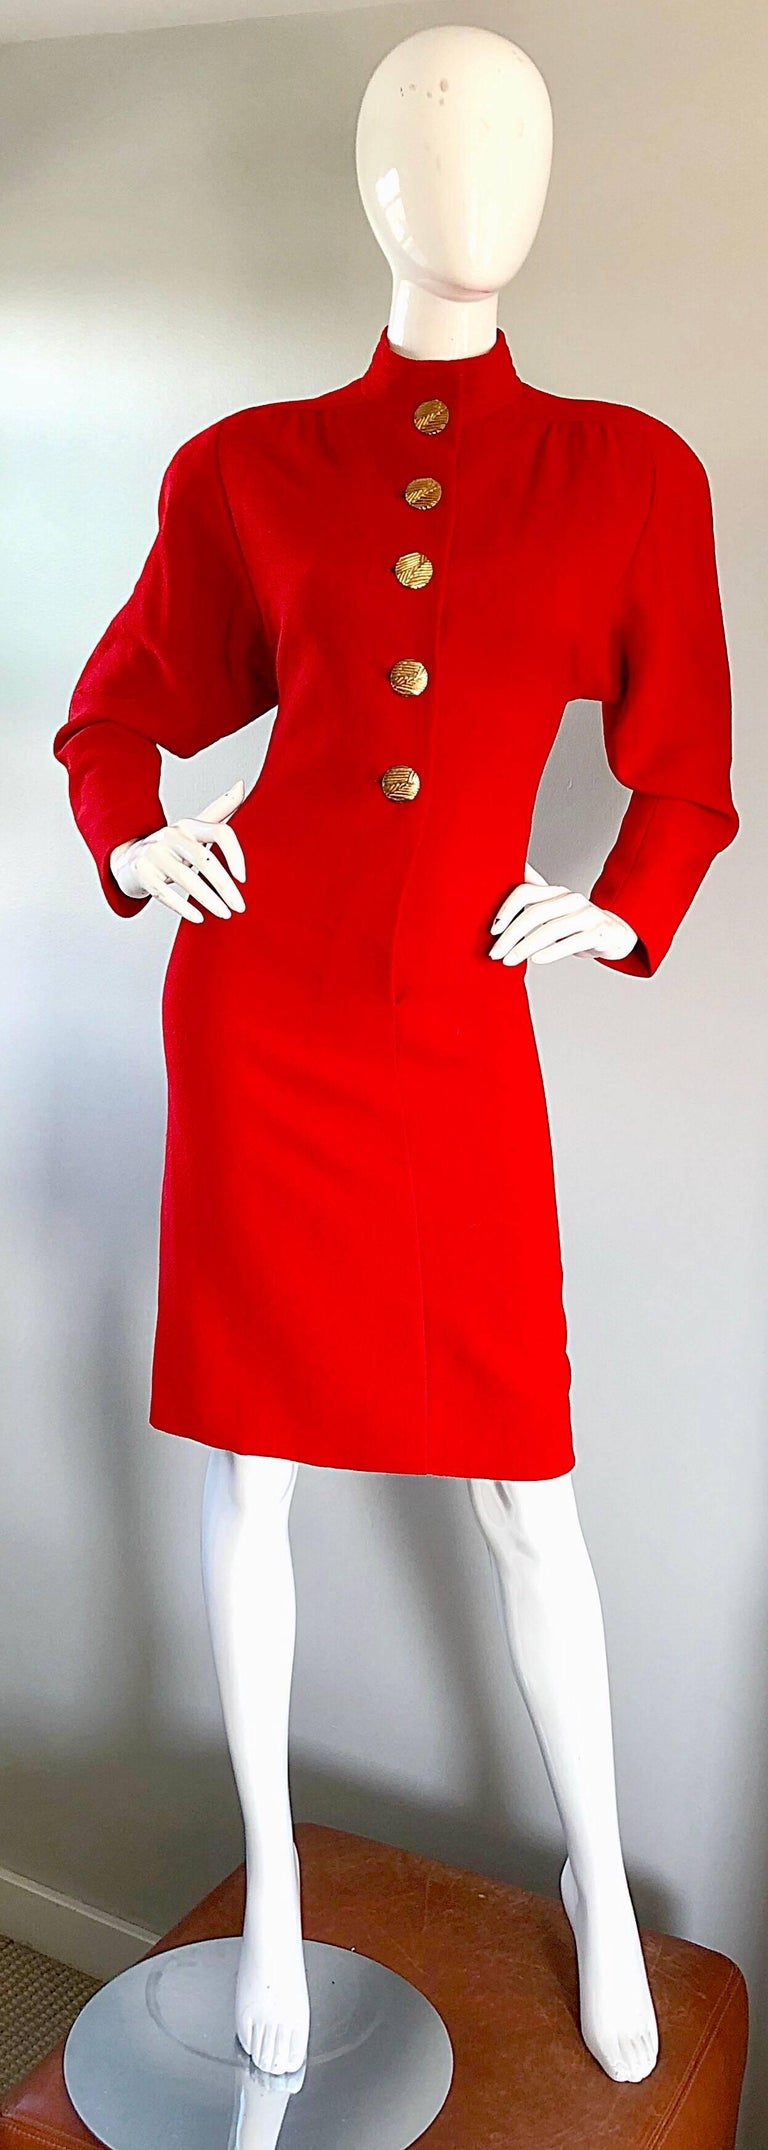 Beautiful Vintage Galanos Lipstick Red Avant Garde 1980s Wool Size 8 10 Dress  For Sale 5